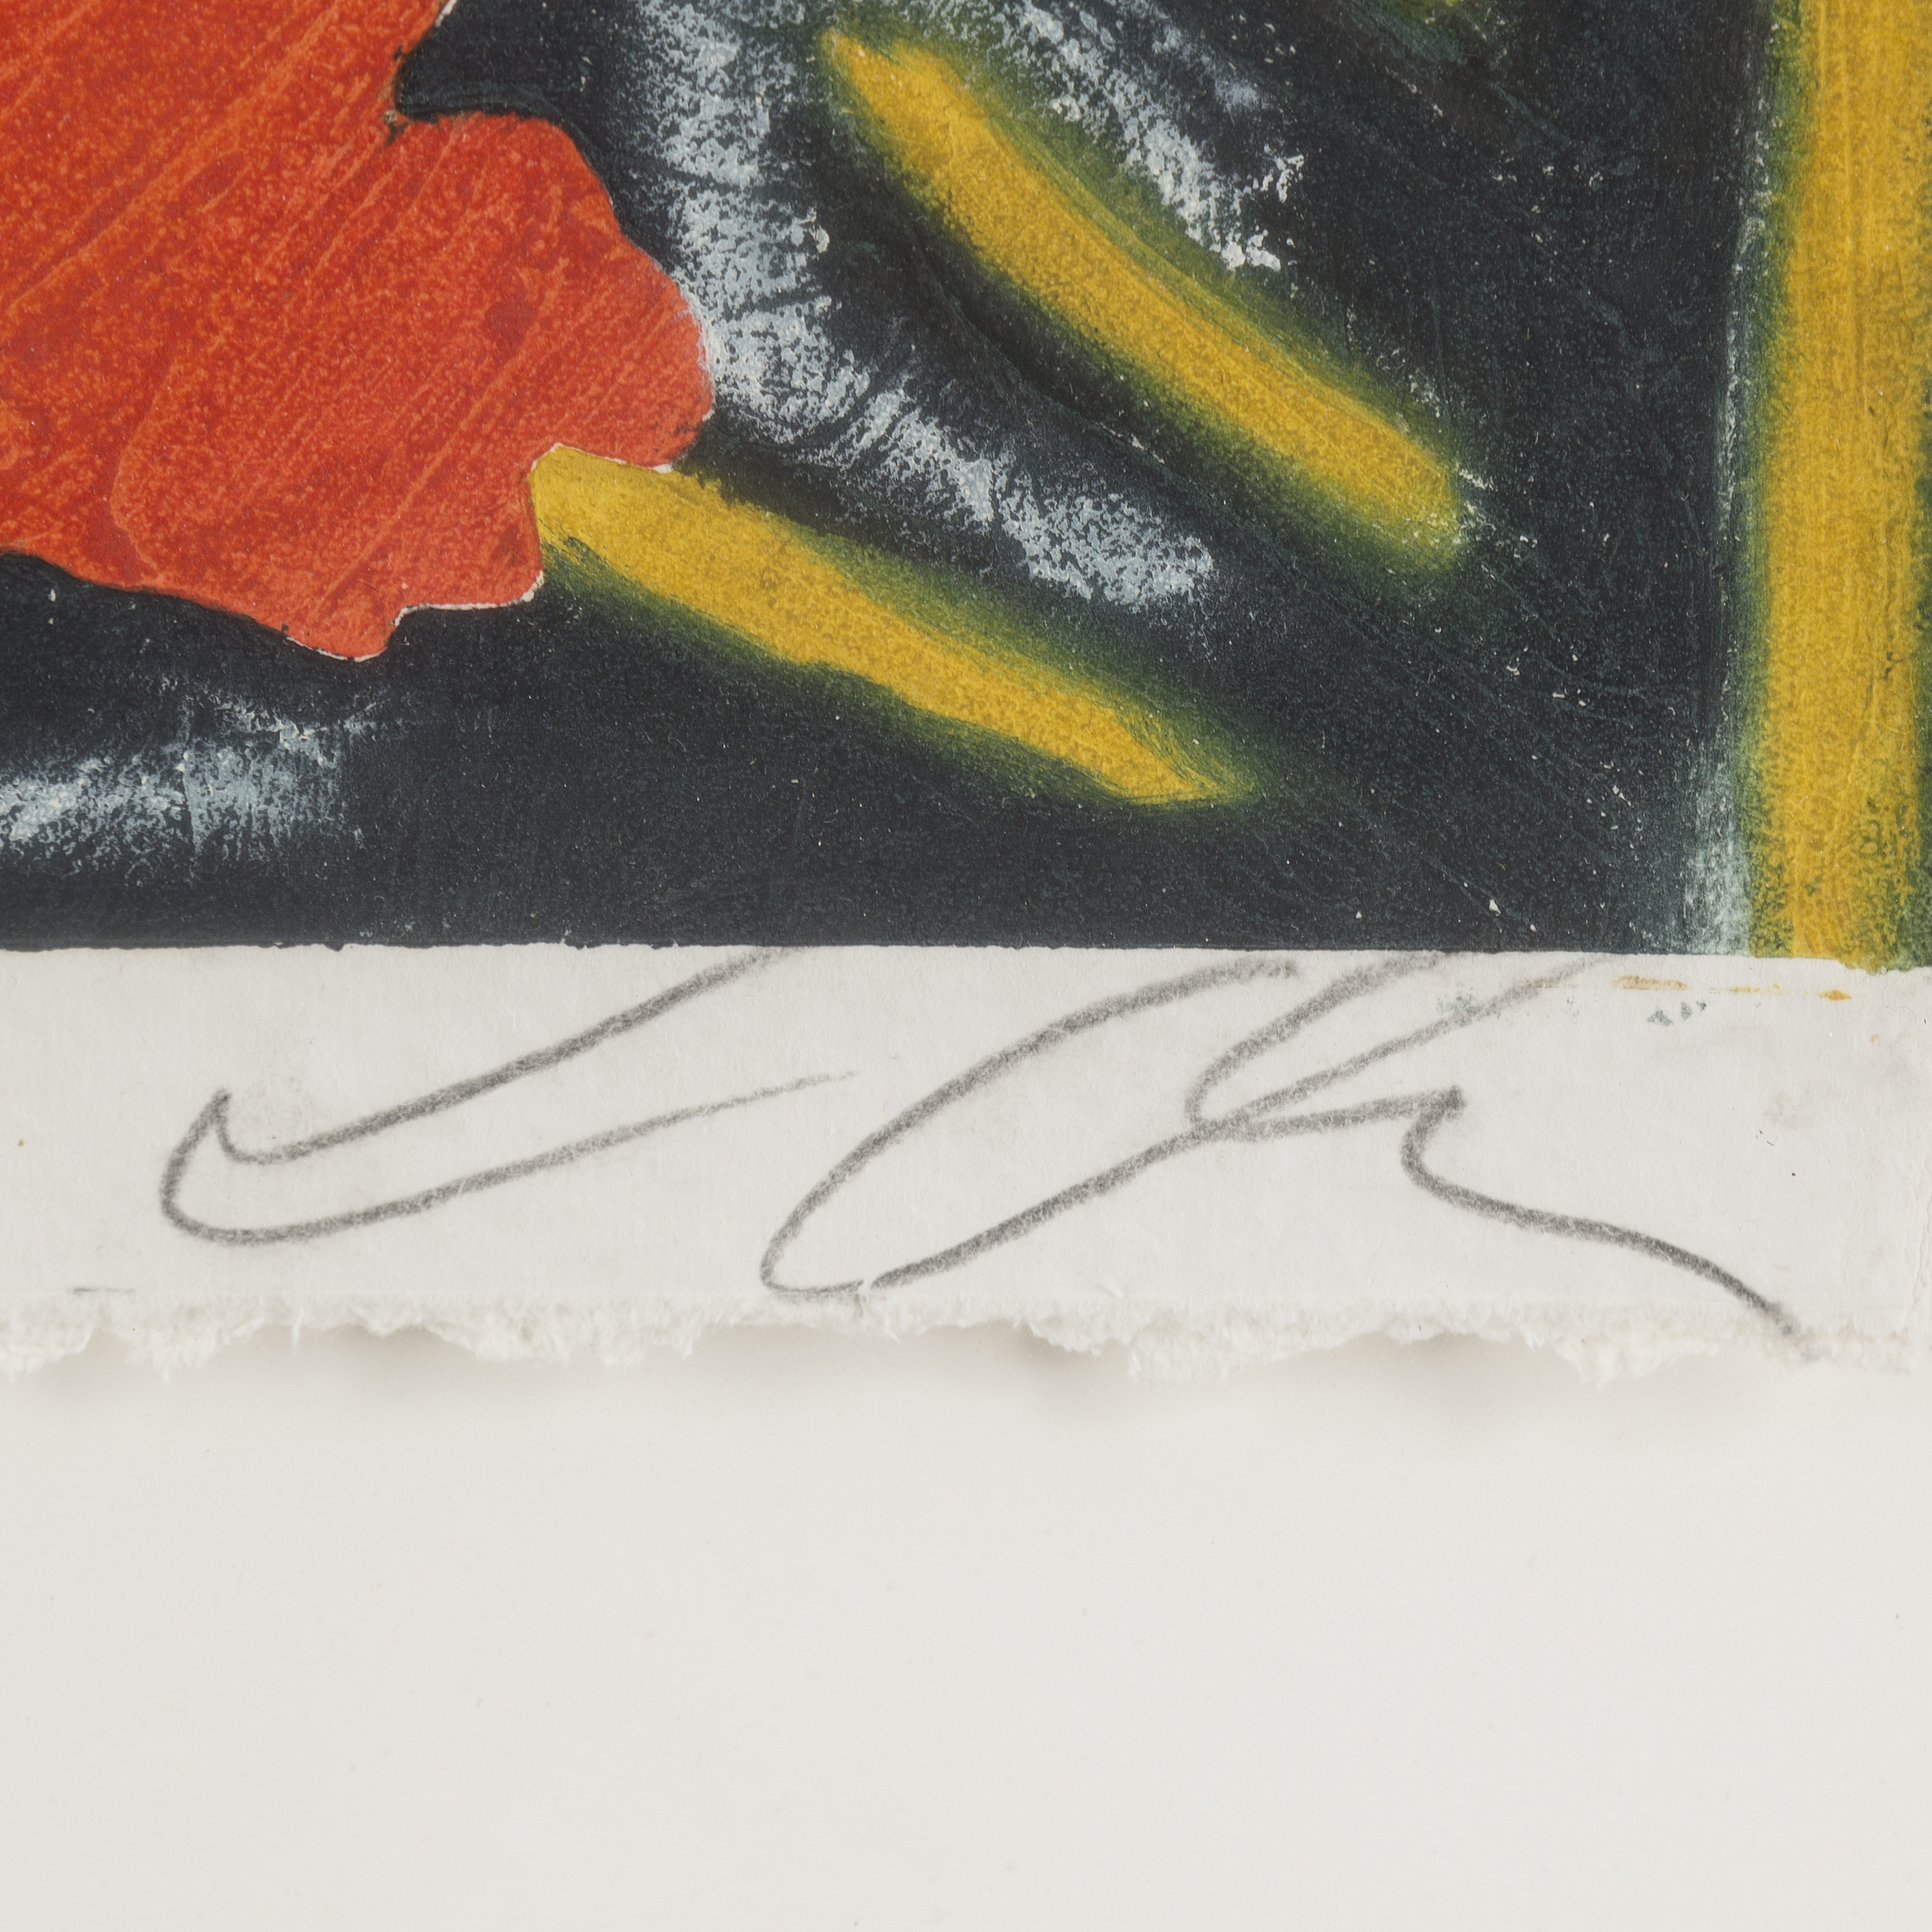 SANDRO CHIA, carborundum etching, signed and numbered 39/50